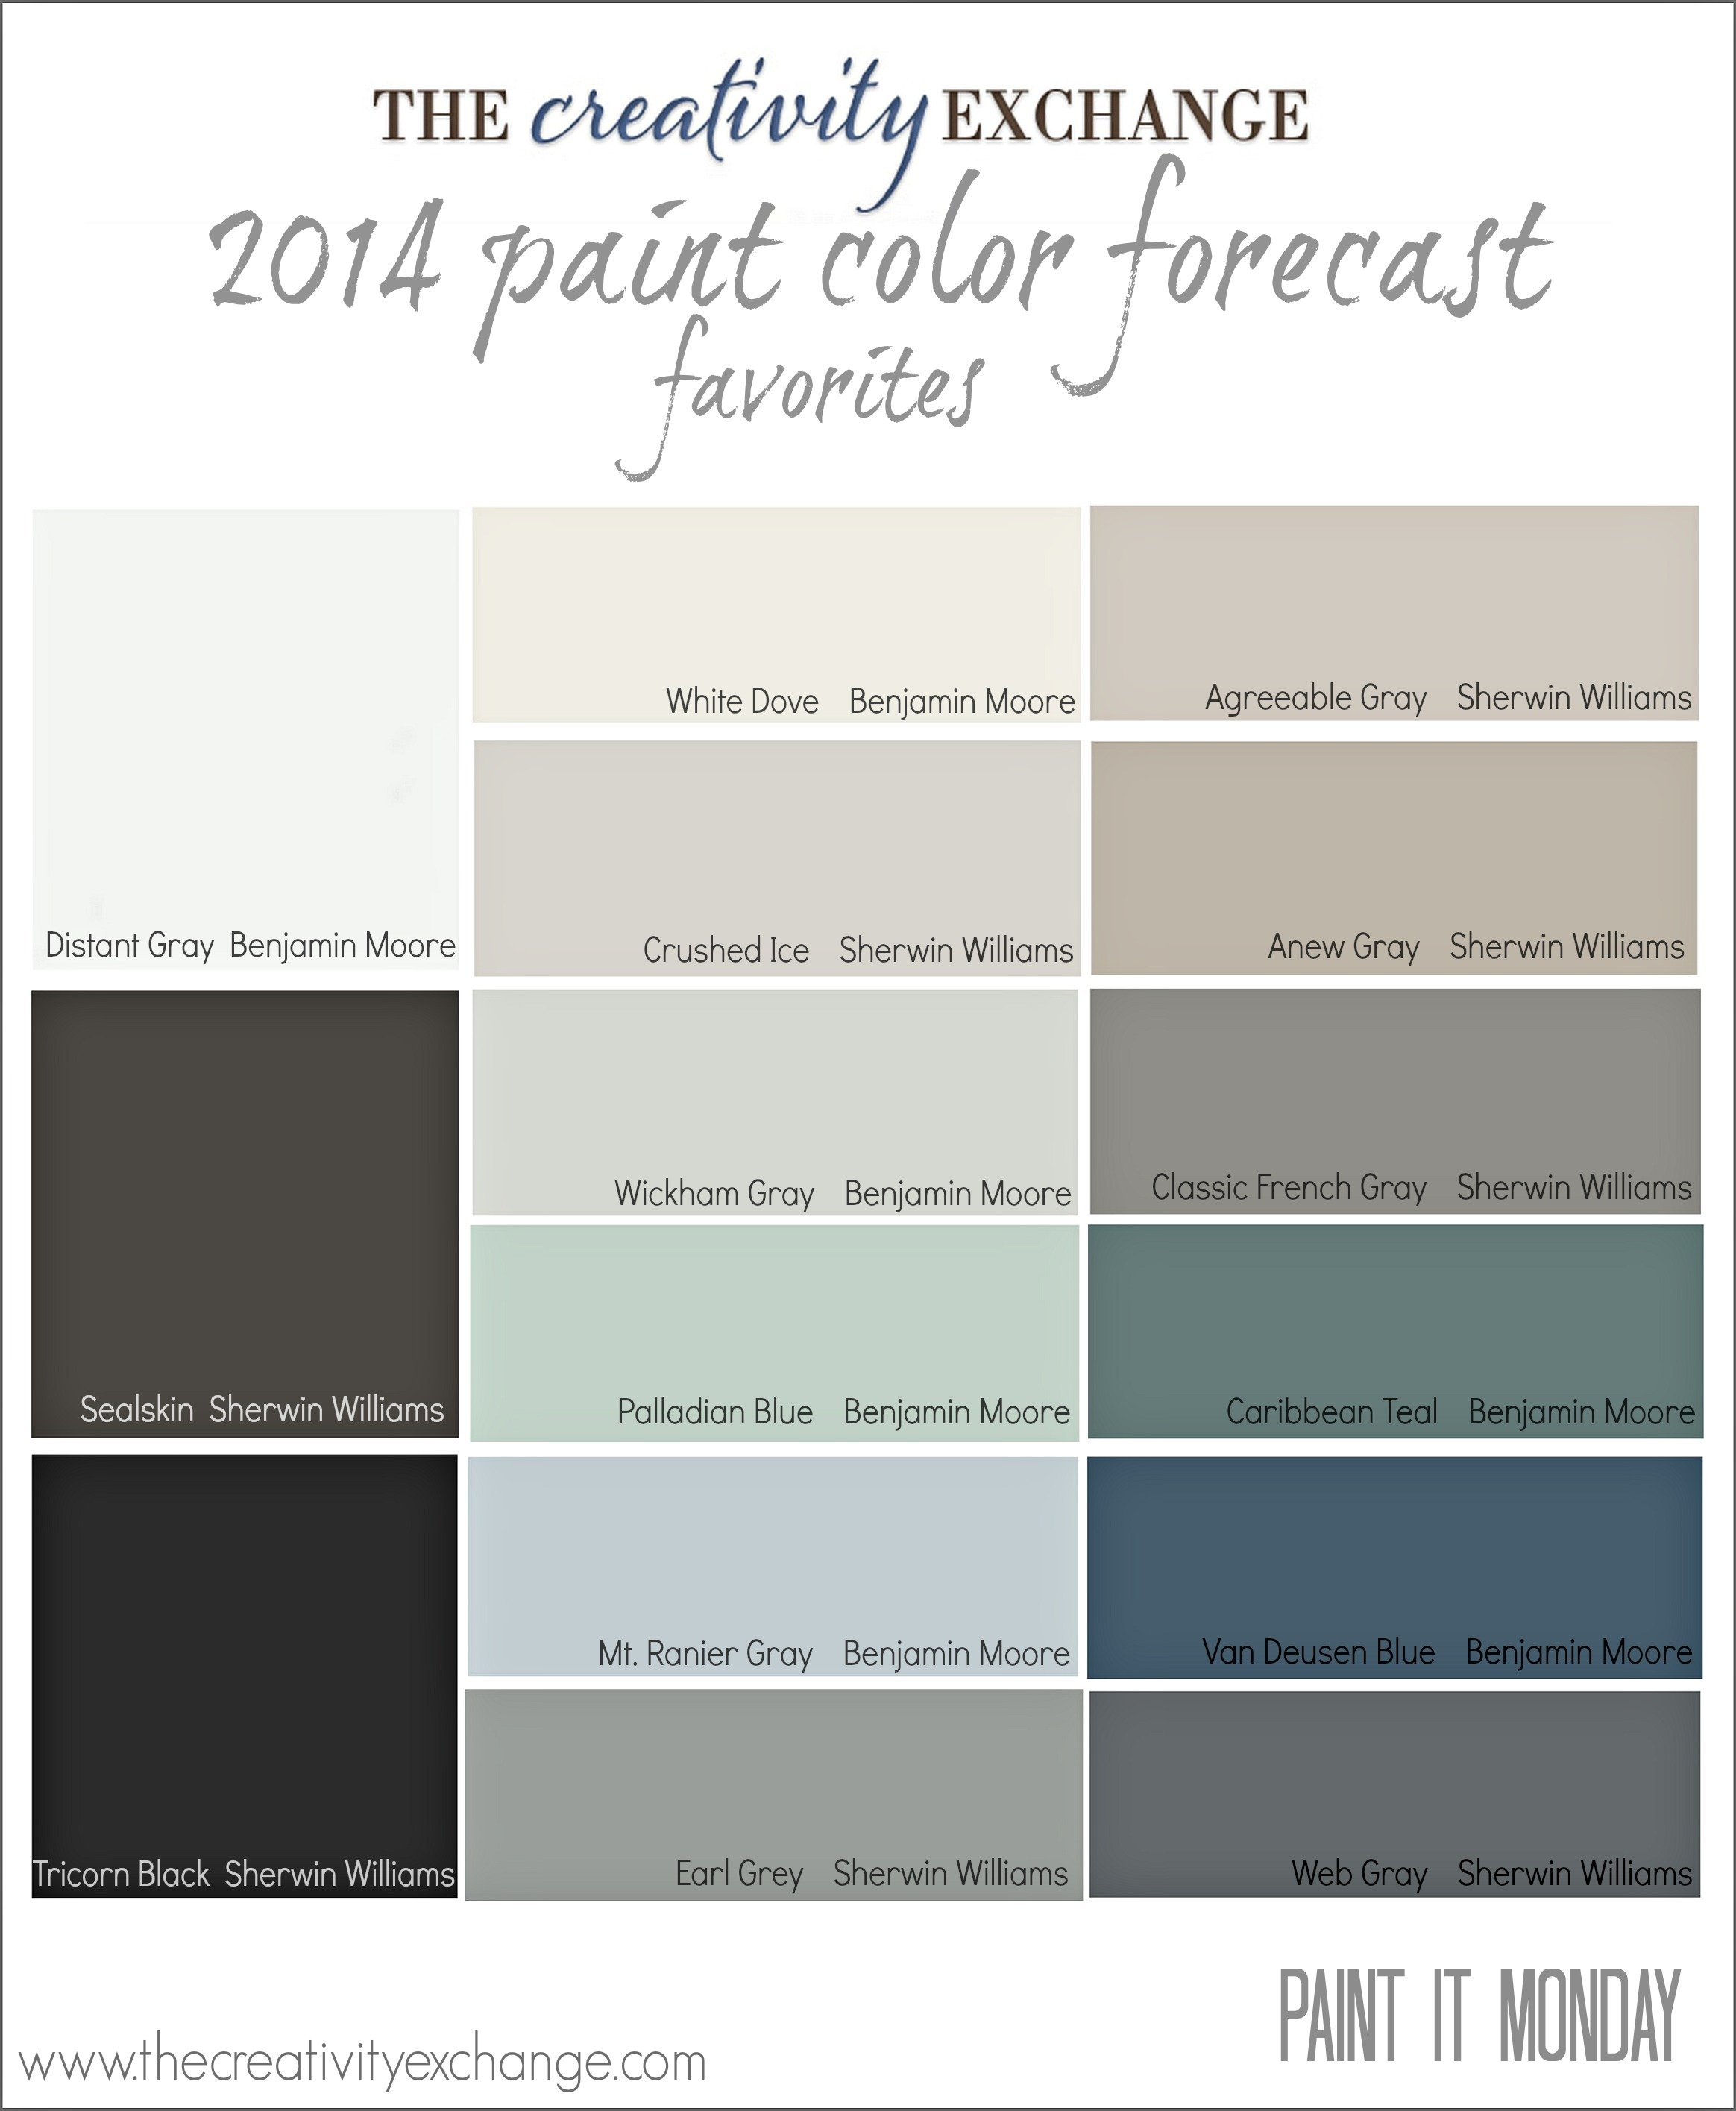 ... paint colors in the 2014 paint forecast. The names of the paint color